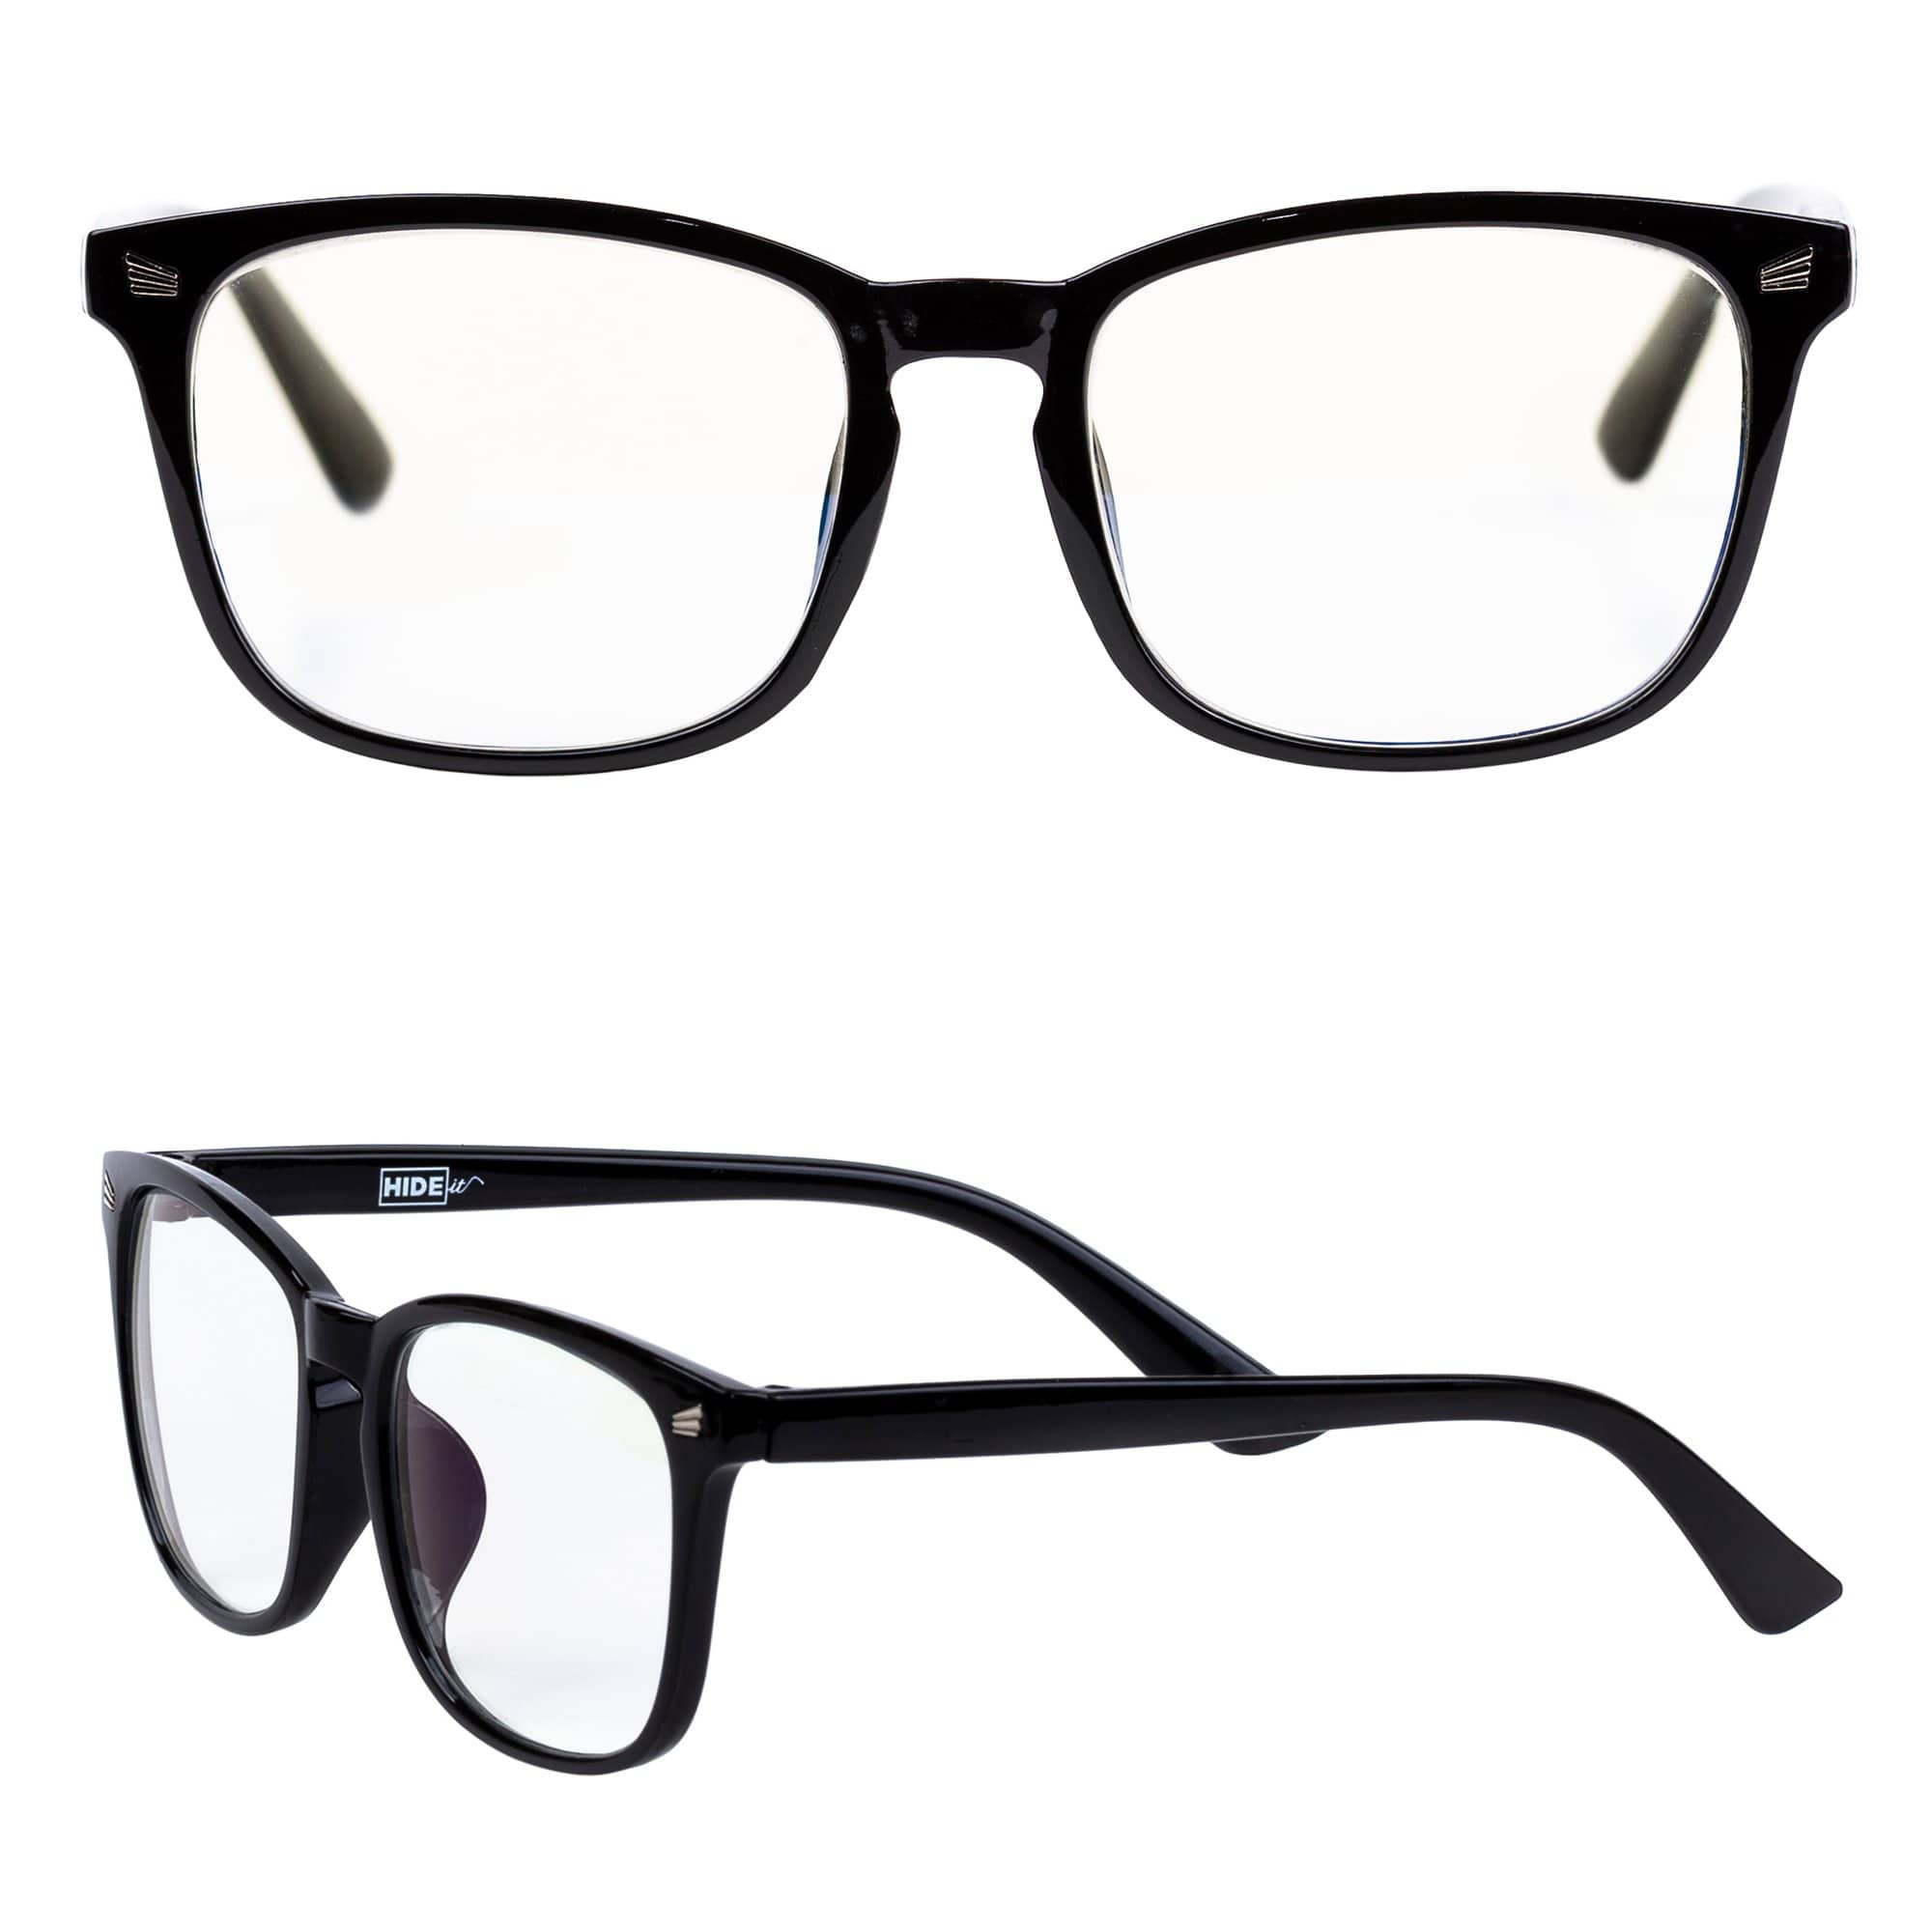 Glossy black computer glasses with clear lenses to help block most blue light effects.